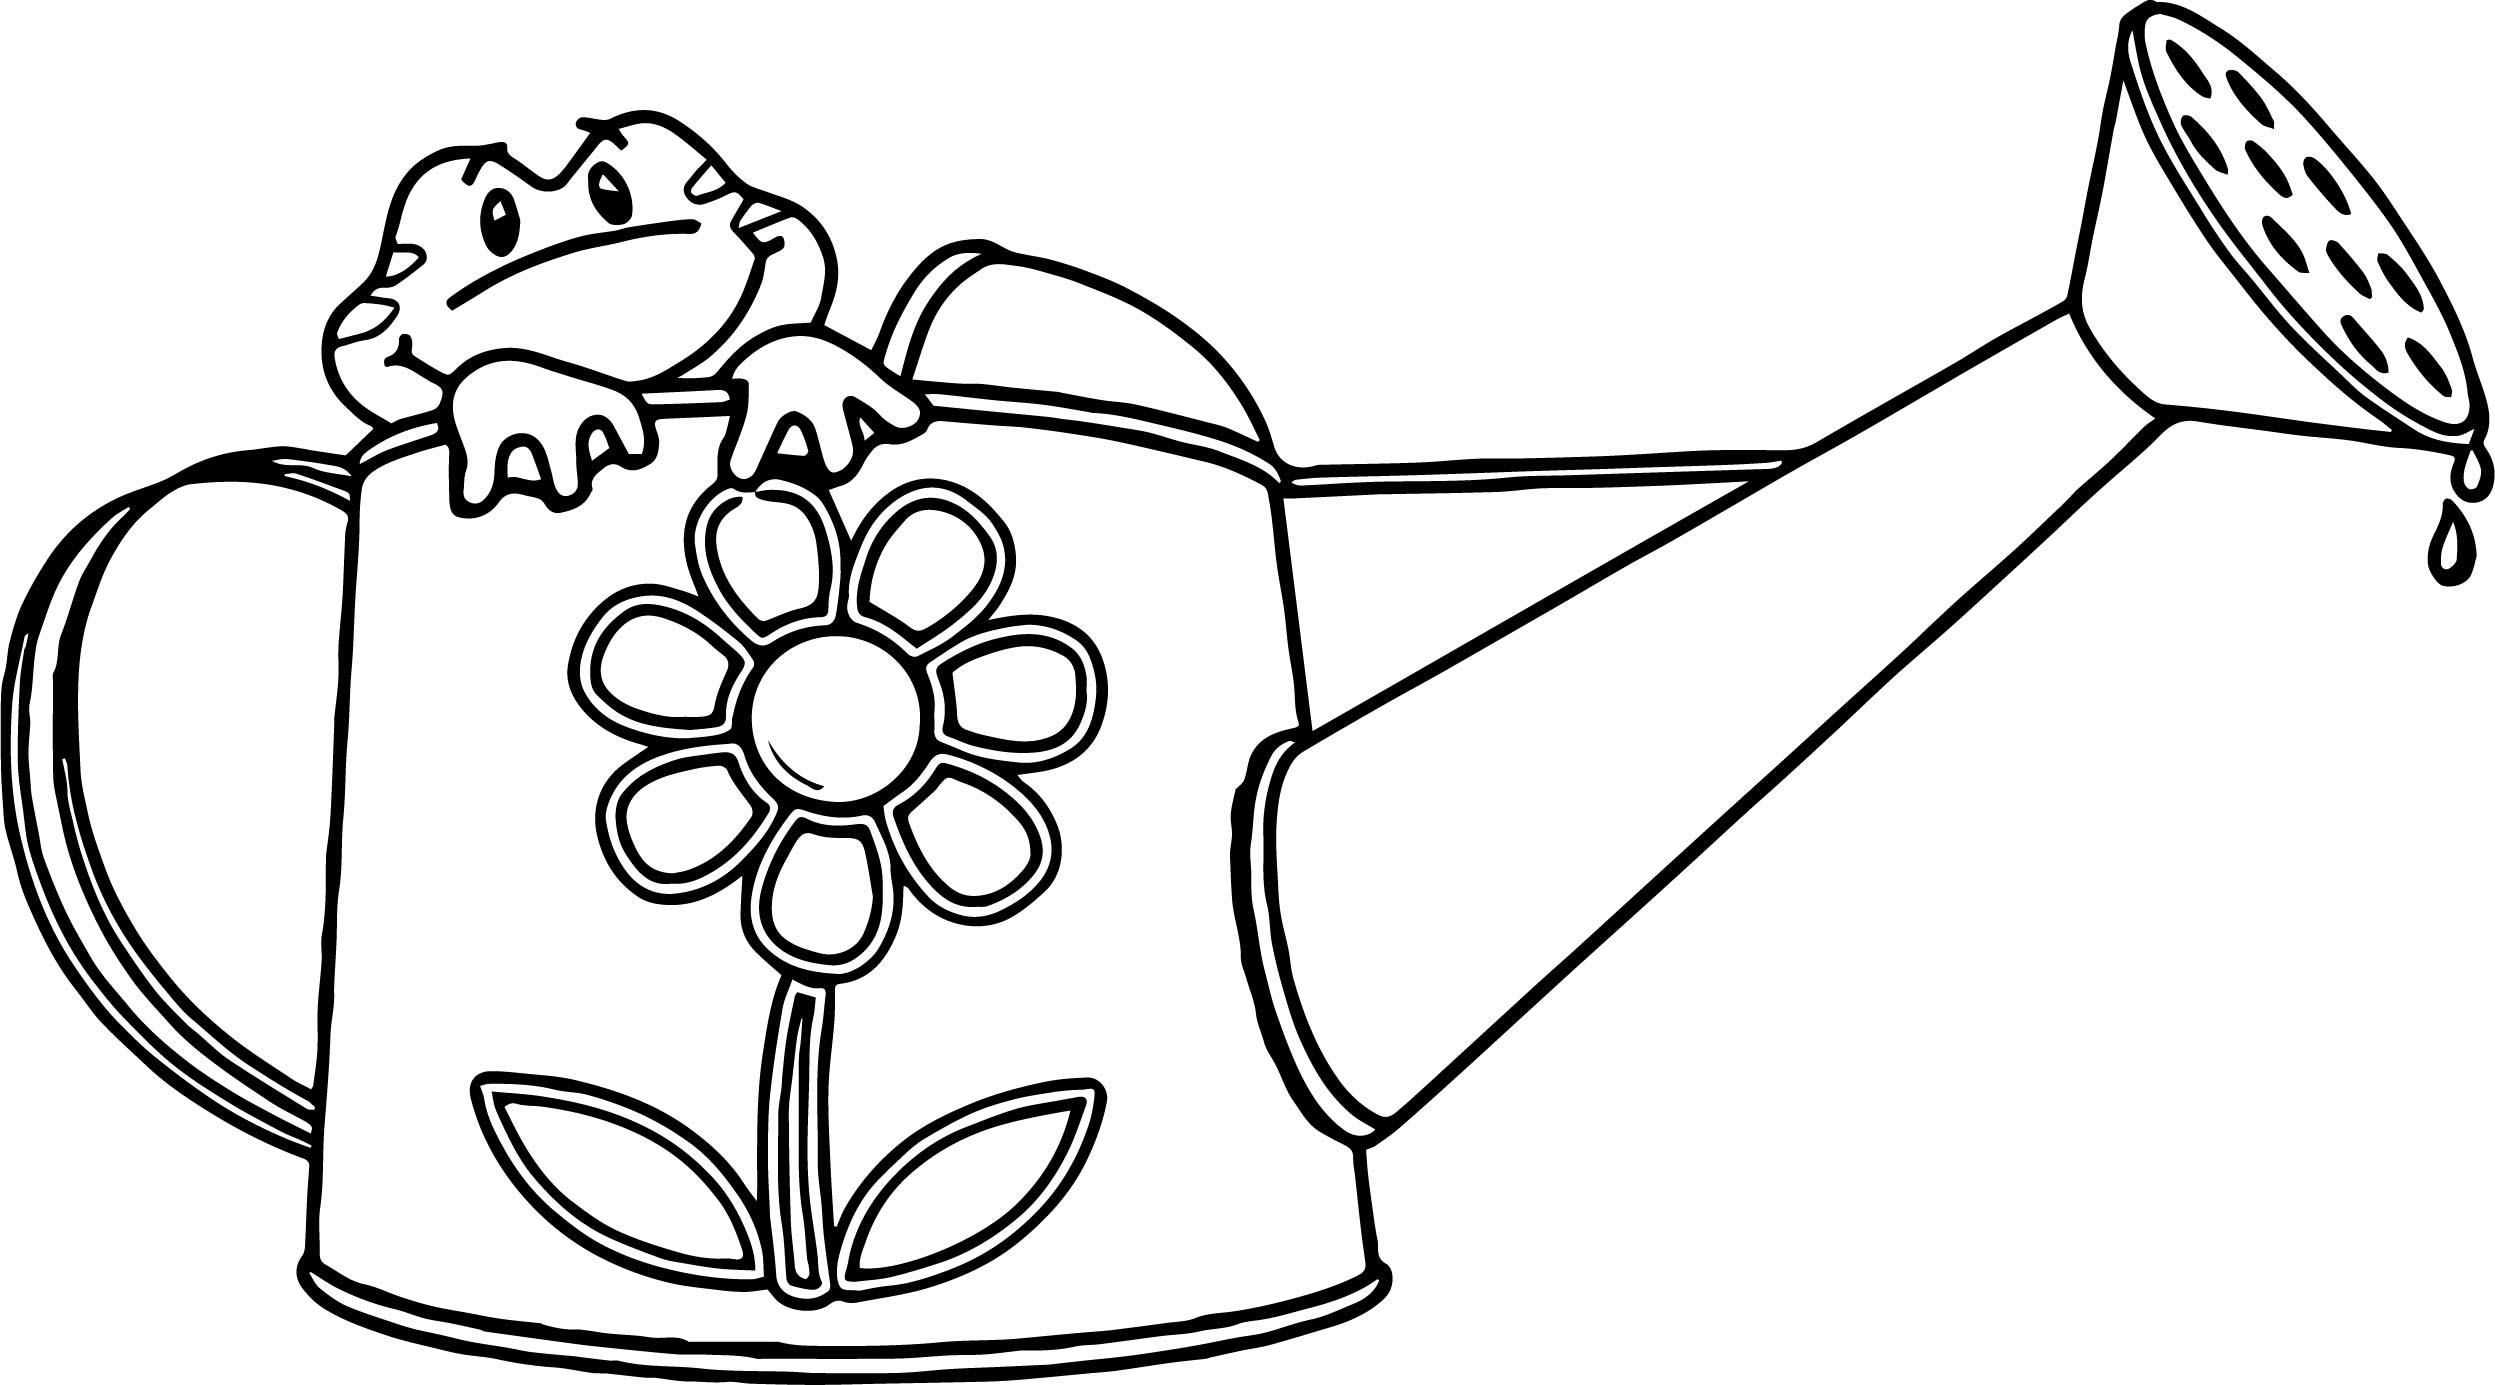 spring frog water cup coloring page wecoloringpage